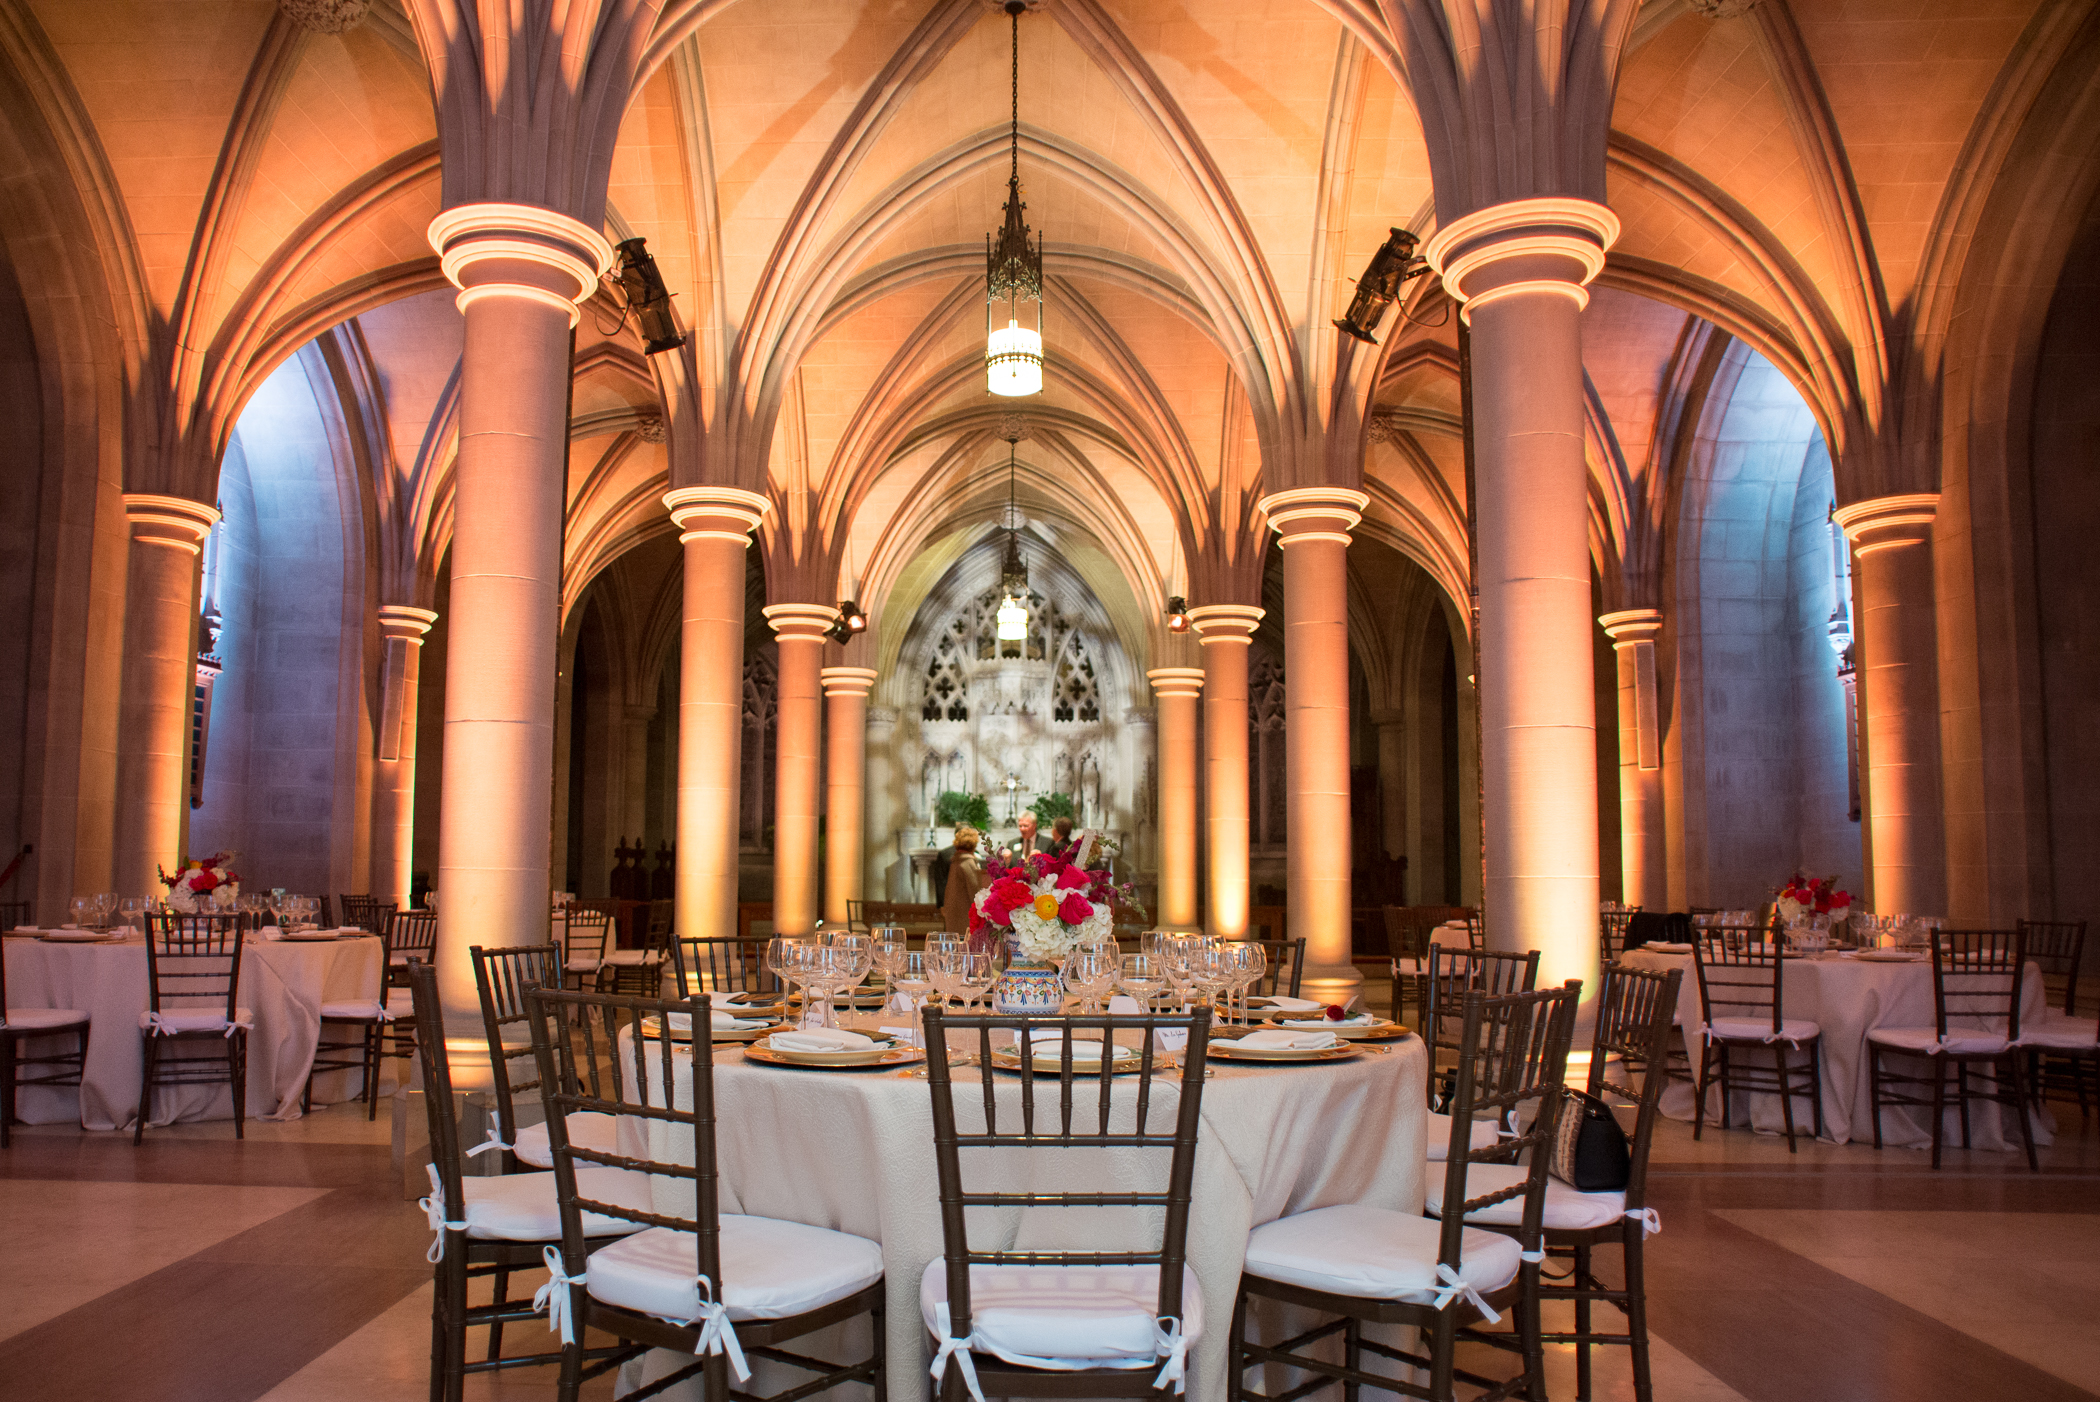 Did you know that  The National Cathedral  rents out various spaces for events? Make sure you get a fabulous lighting company like  Atmosphere Lighting  (shown above) to showcase the architecture. This event had a Spanish theme so we naturally used sangria pitchers made in Spain for vases. Photo by  Erin Scott Photography